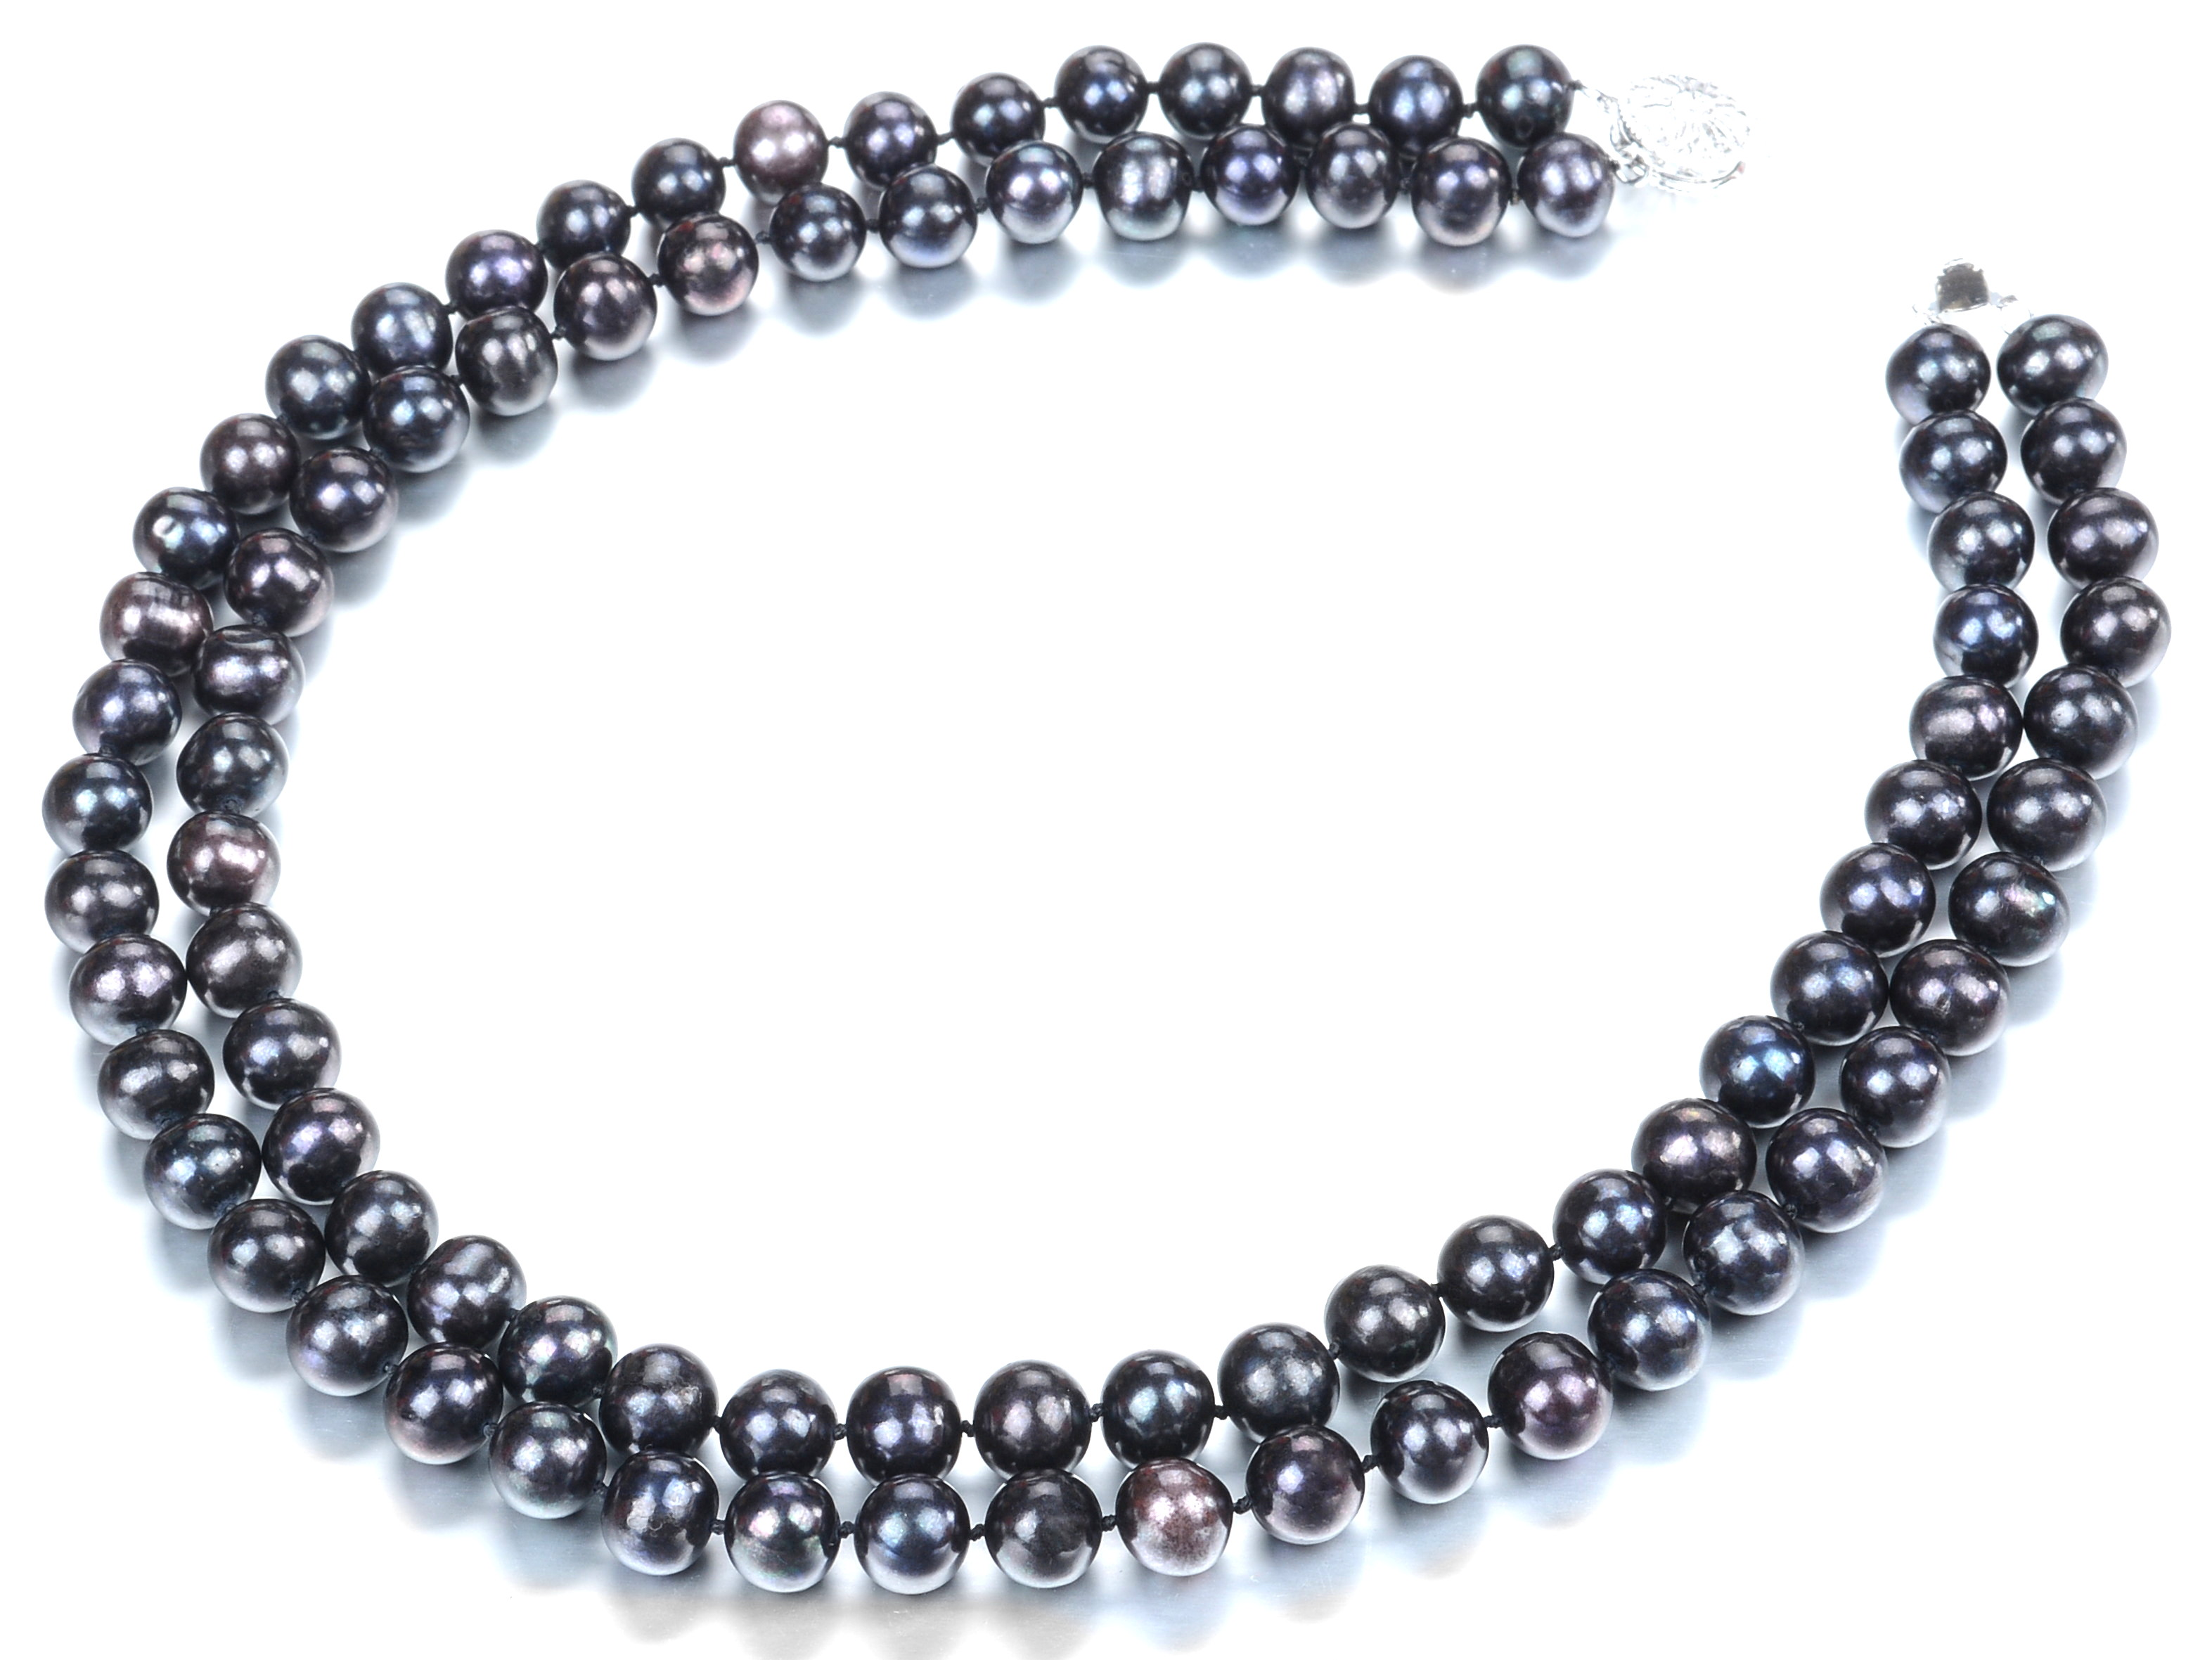 Two Strand 9.5 mm AAA Lustrous Pure Black Freshwater Pearl Necklace -nk283